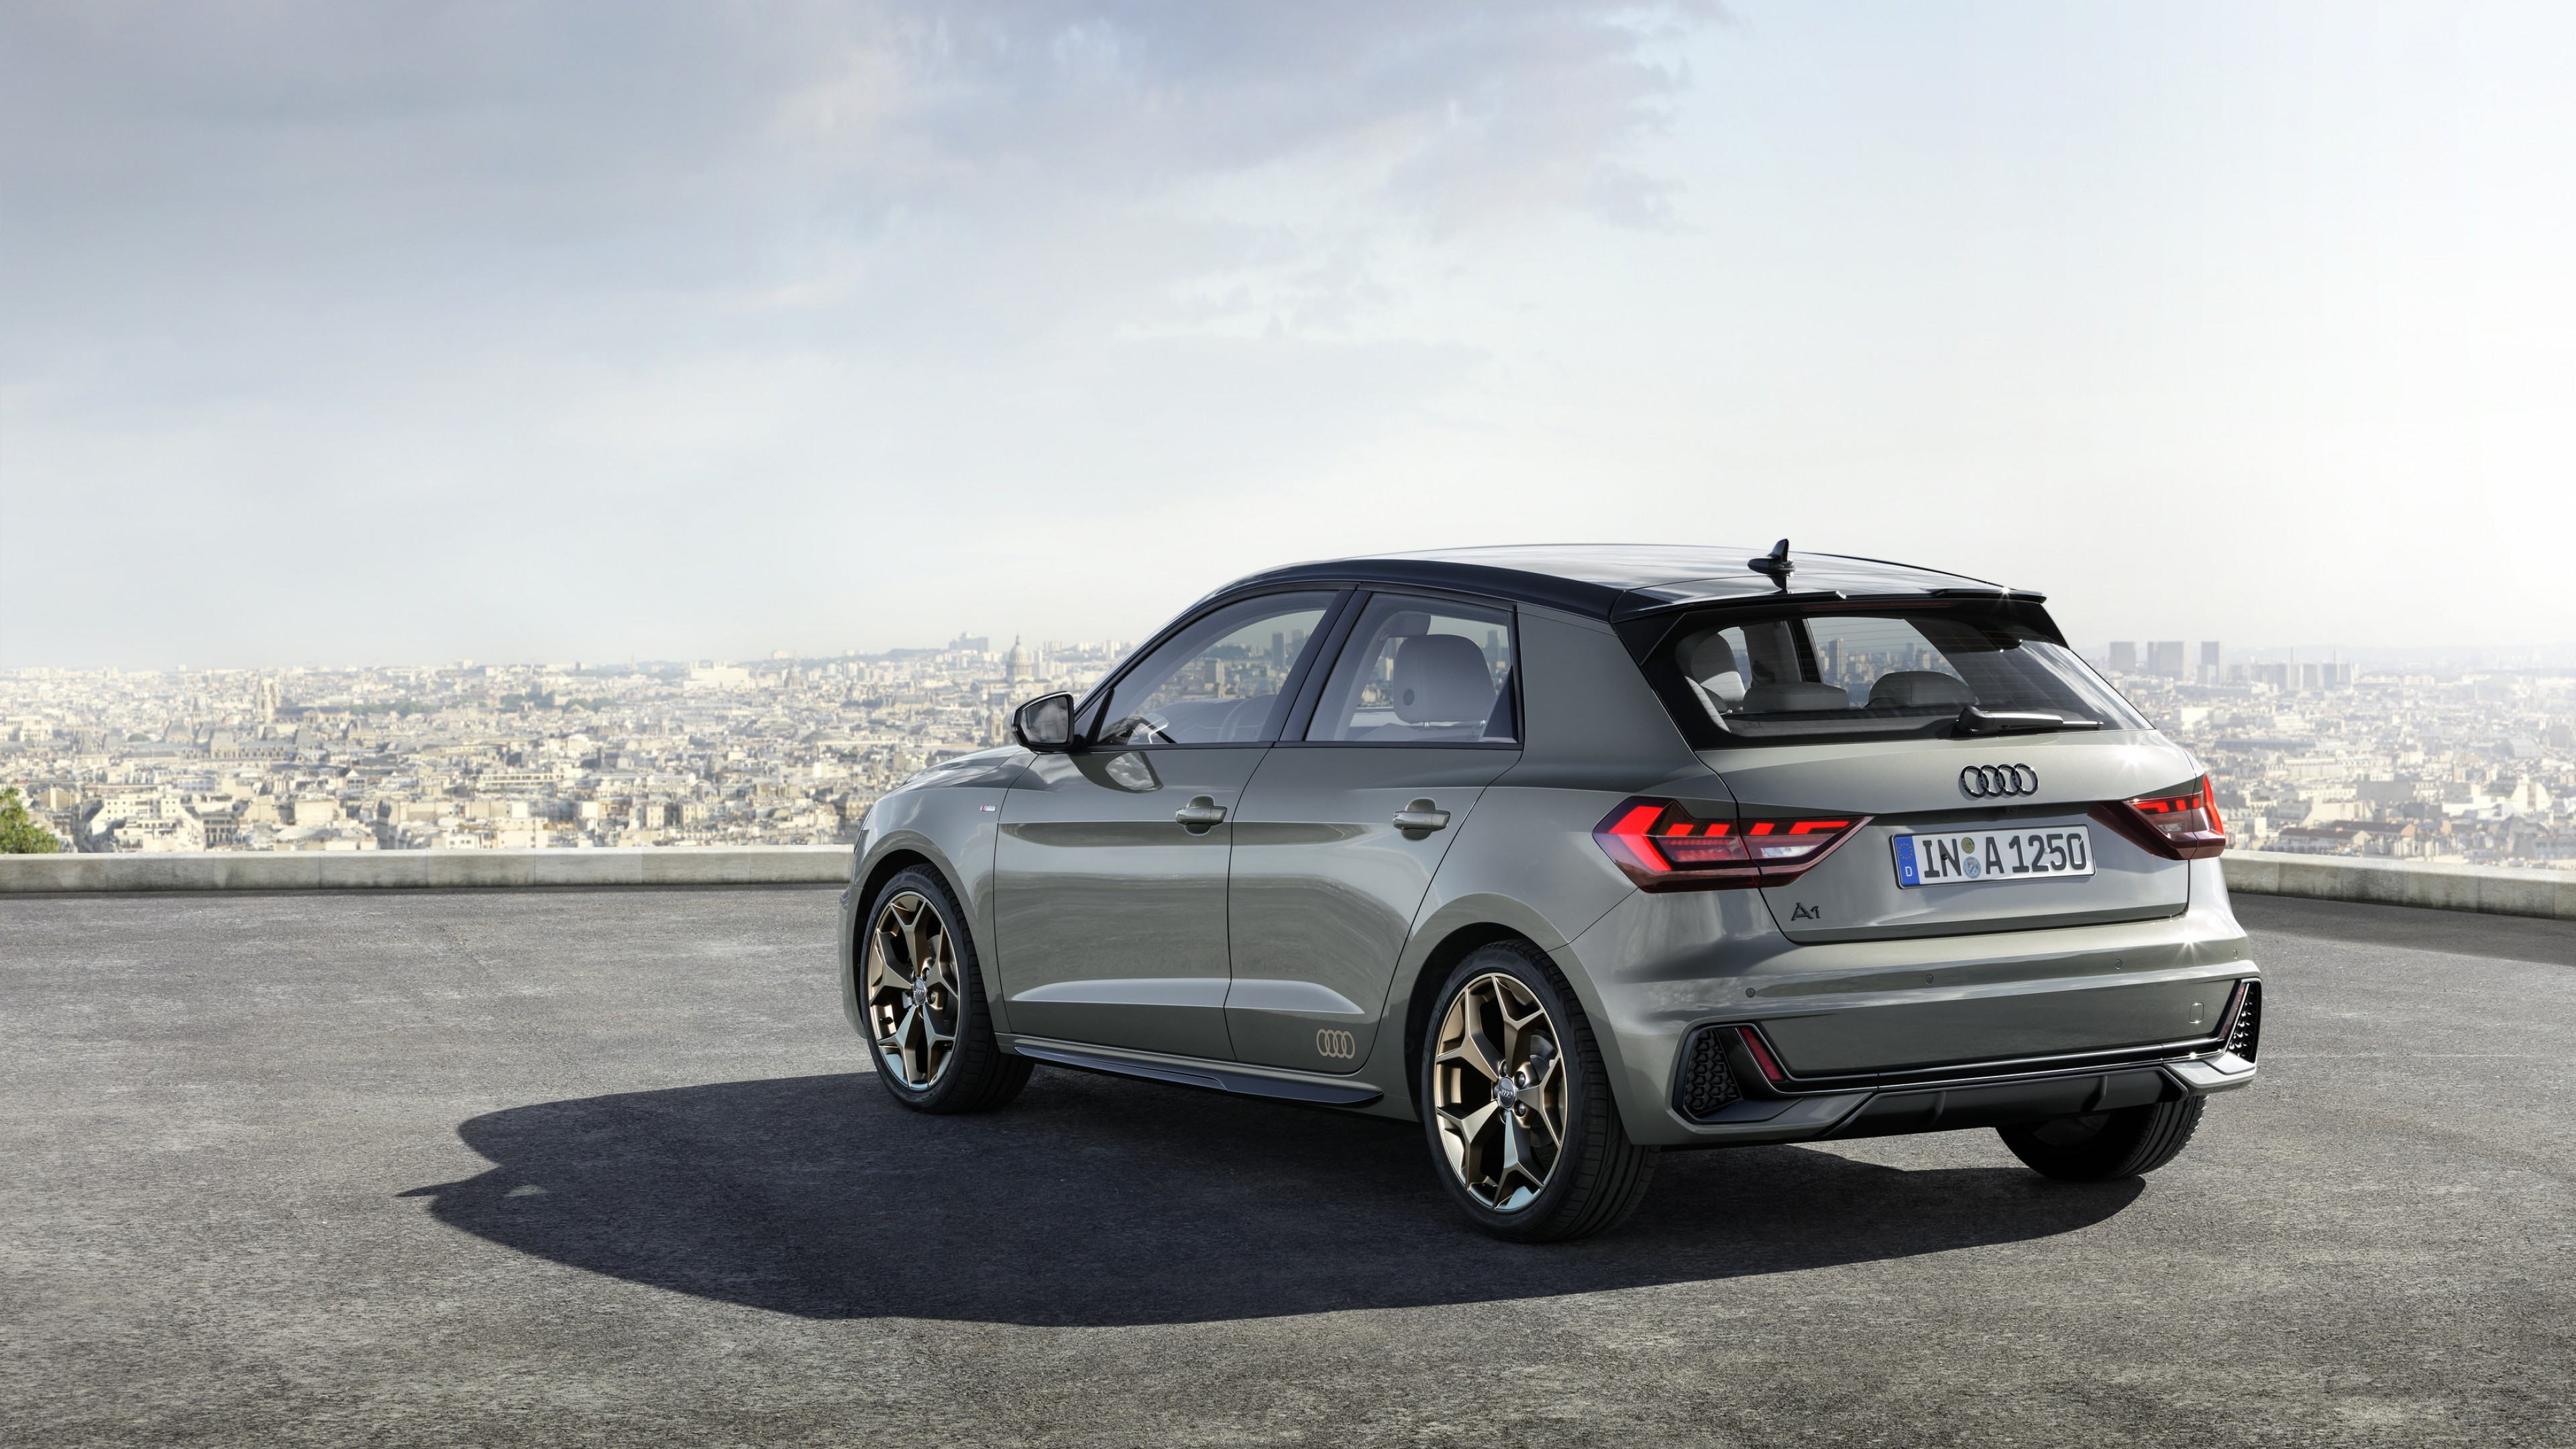 3840x2160 - Audi A1 Wallpapers 24